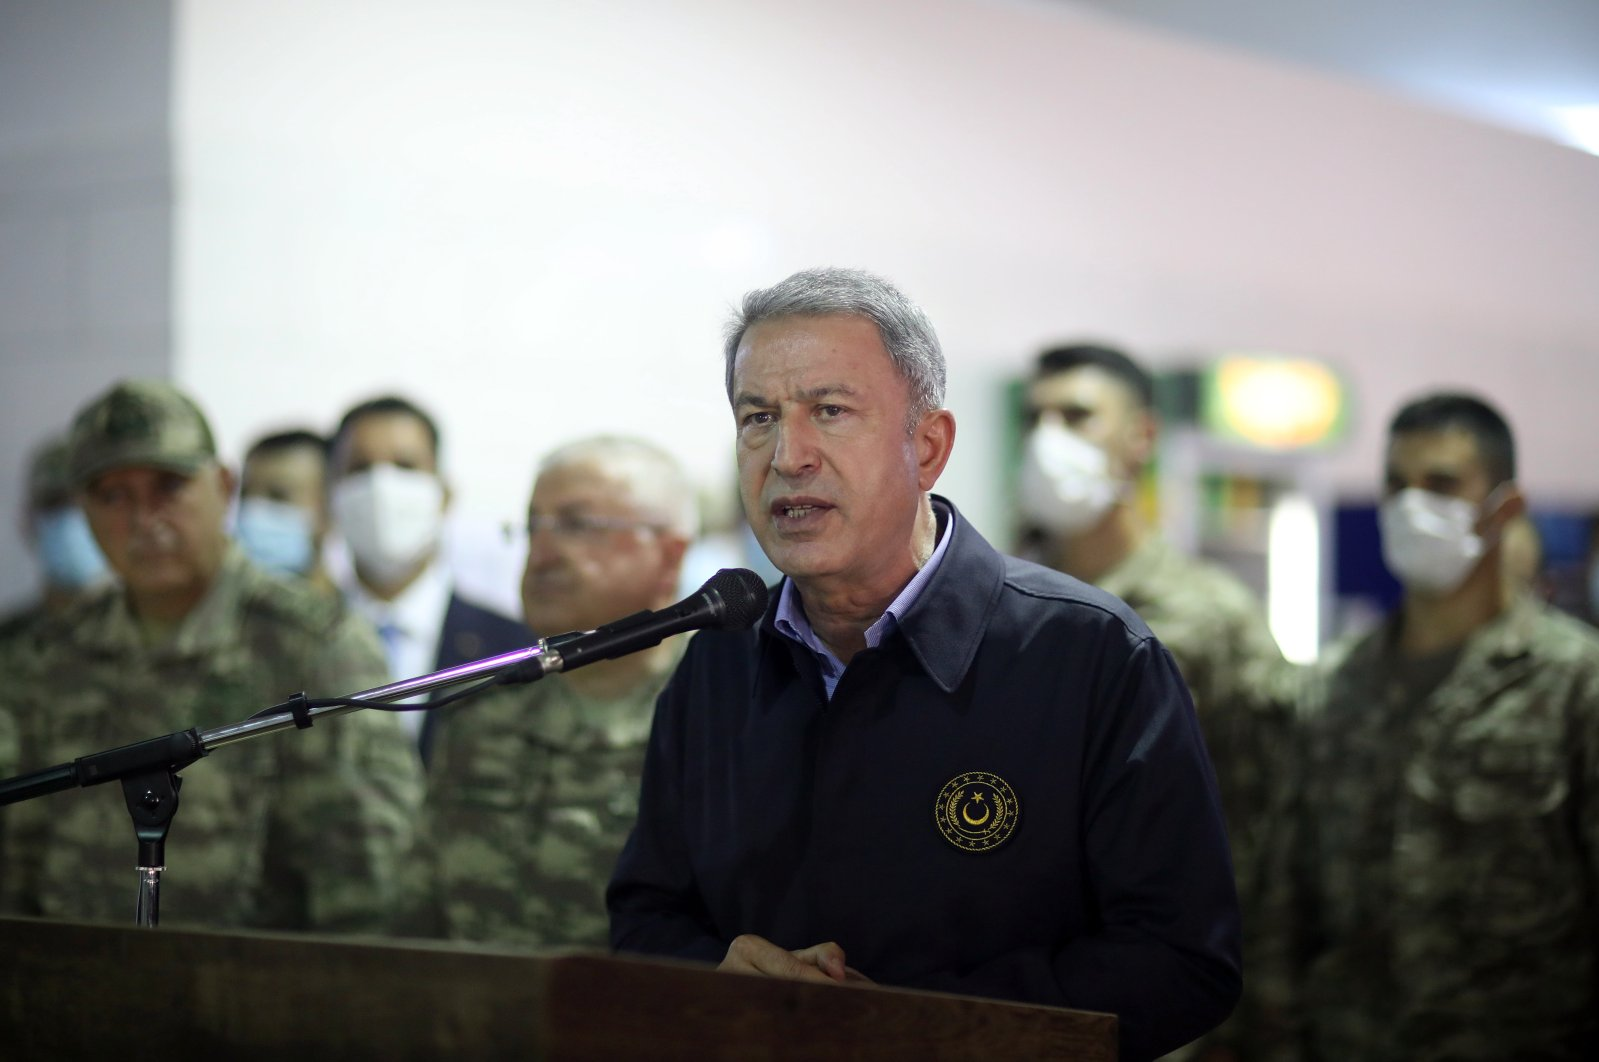 A handout picture made available by the Defense Ministry shows National Defense Minister Hulusi Akar speaking as he visits the Defense Security Cooperation and Training Assistance Advisory Command, which was created under the military cooperation memorandum of understanding (MoU) with Libya, in Tripoli, Libya, 17 August 2020.  (EPA / TURKISH DEFENSE MINISTRY HANDOUT)